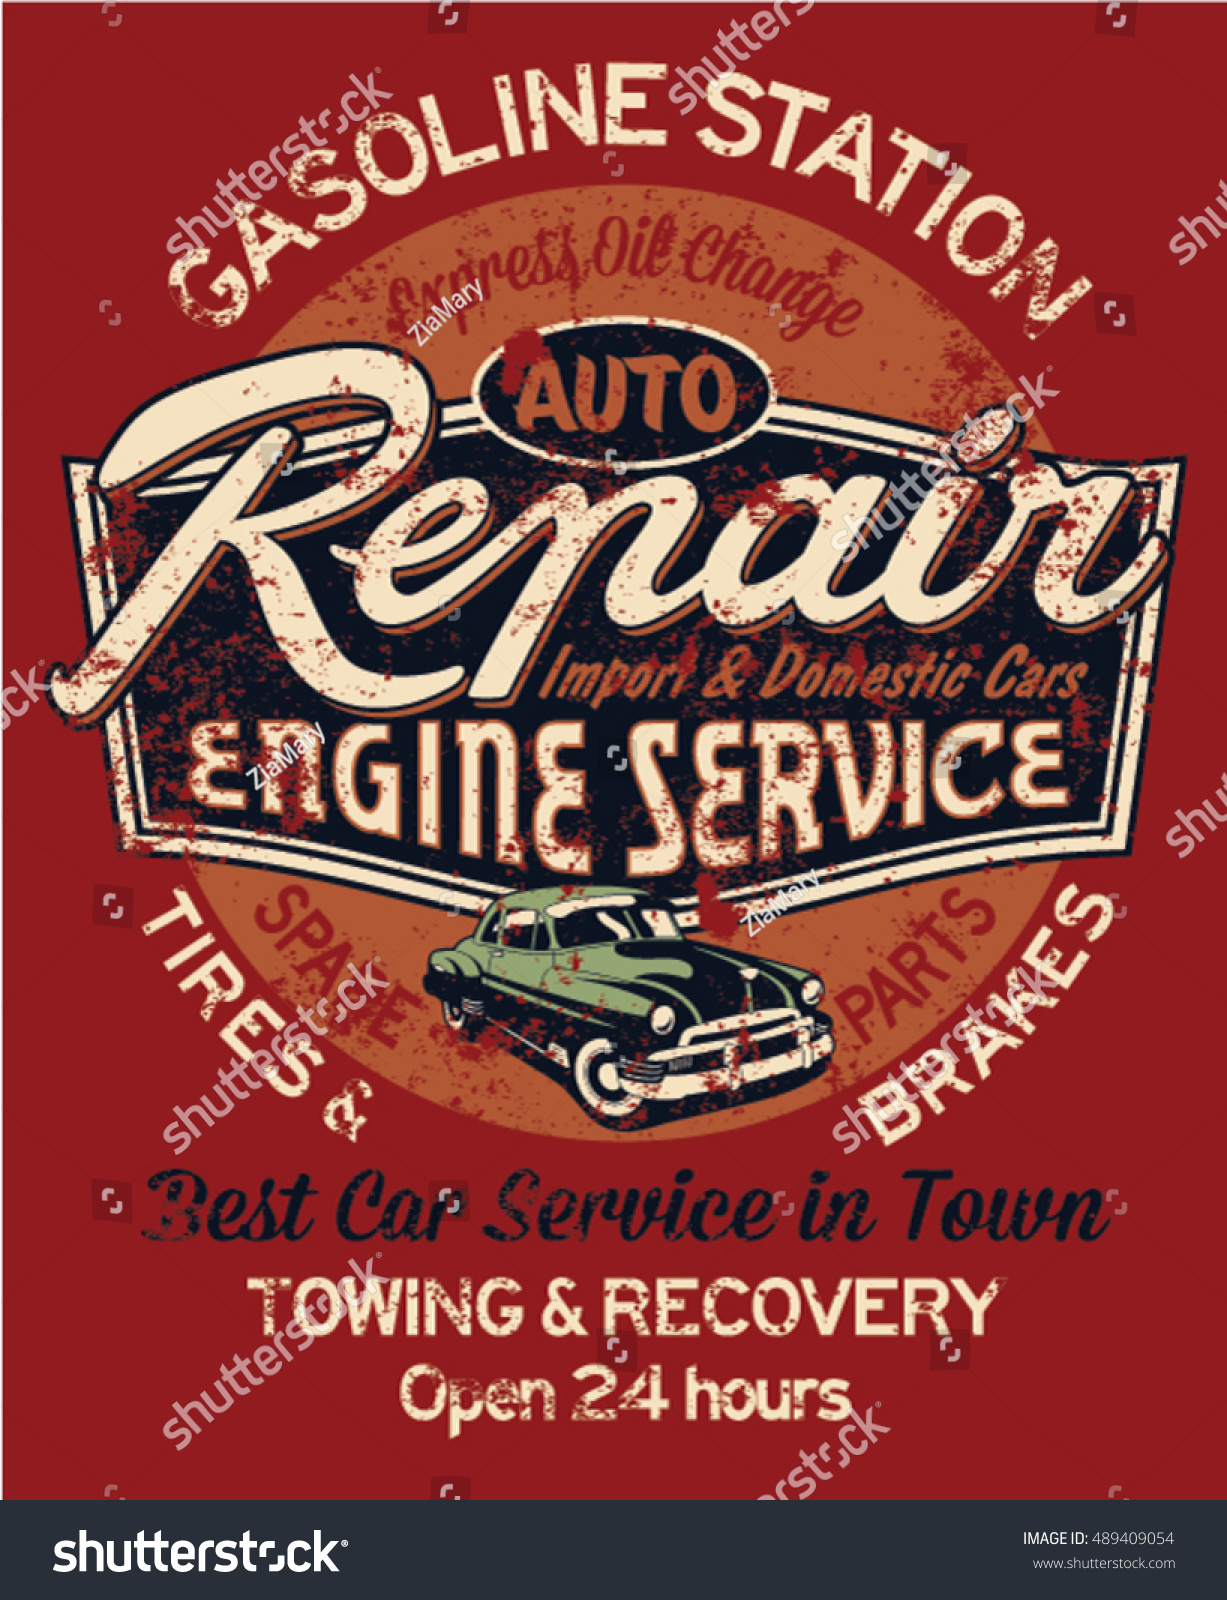 Car Garage Repair Service, Print For T Shirt In Custom Colors, Grunge  Effect In